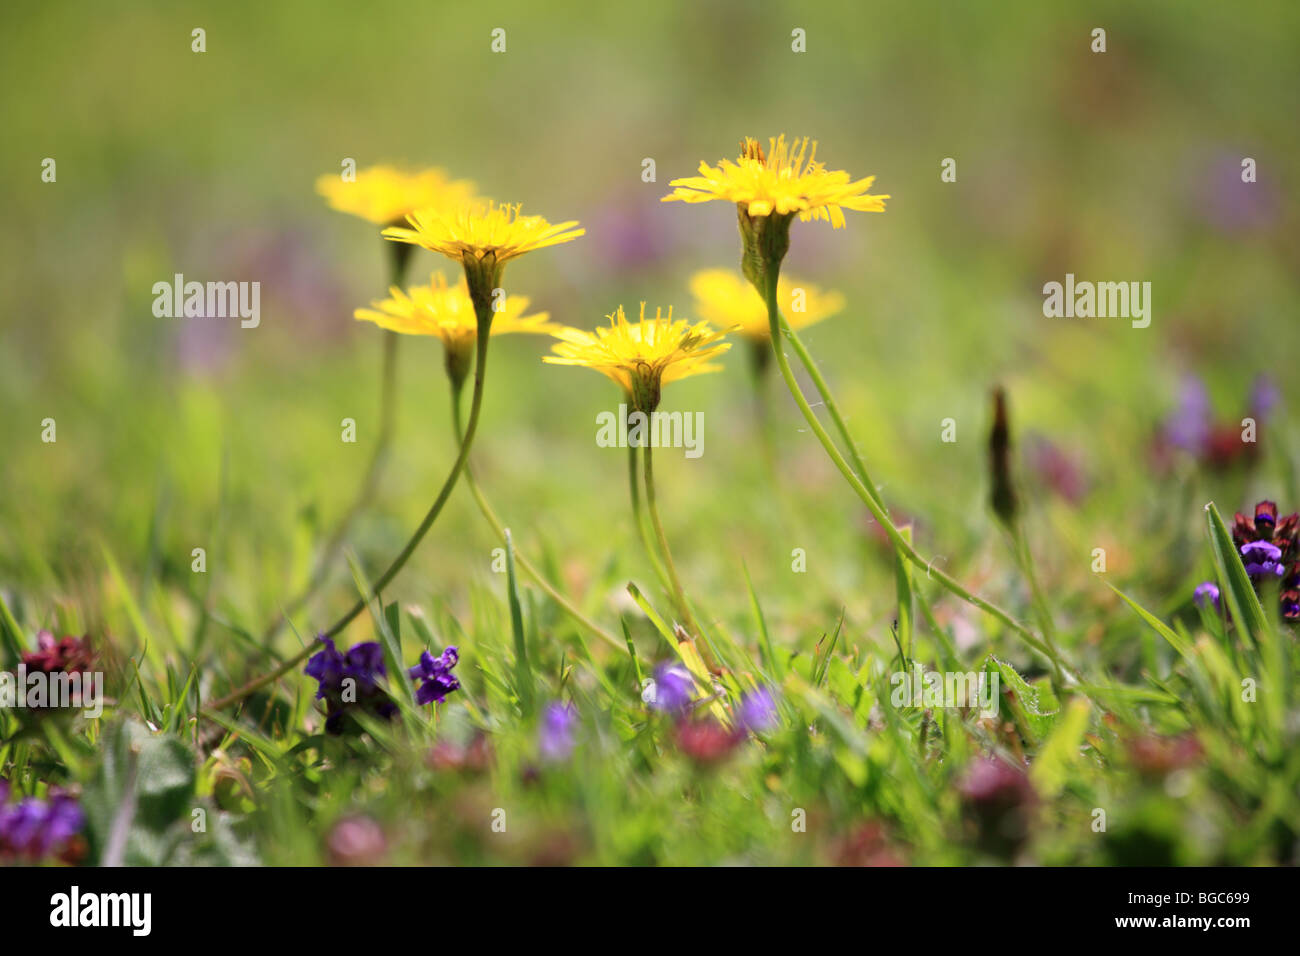 'Dandelions in a lawn', reaching upwards in a circle. - Stock Image